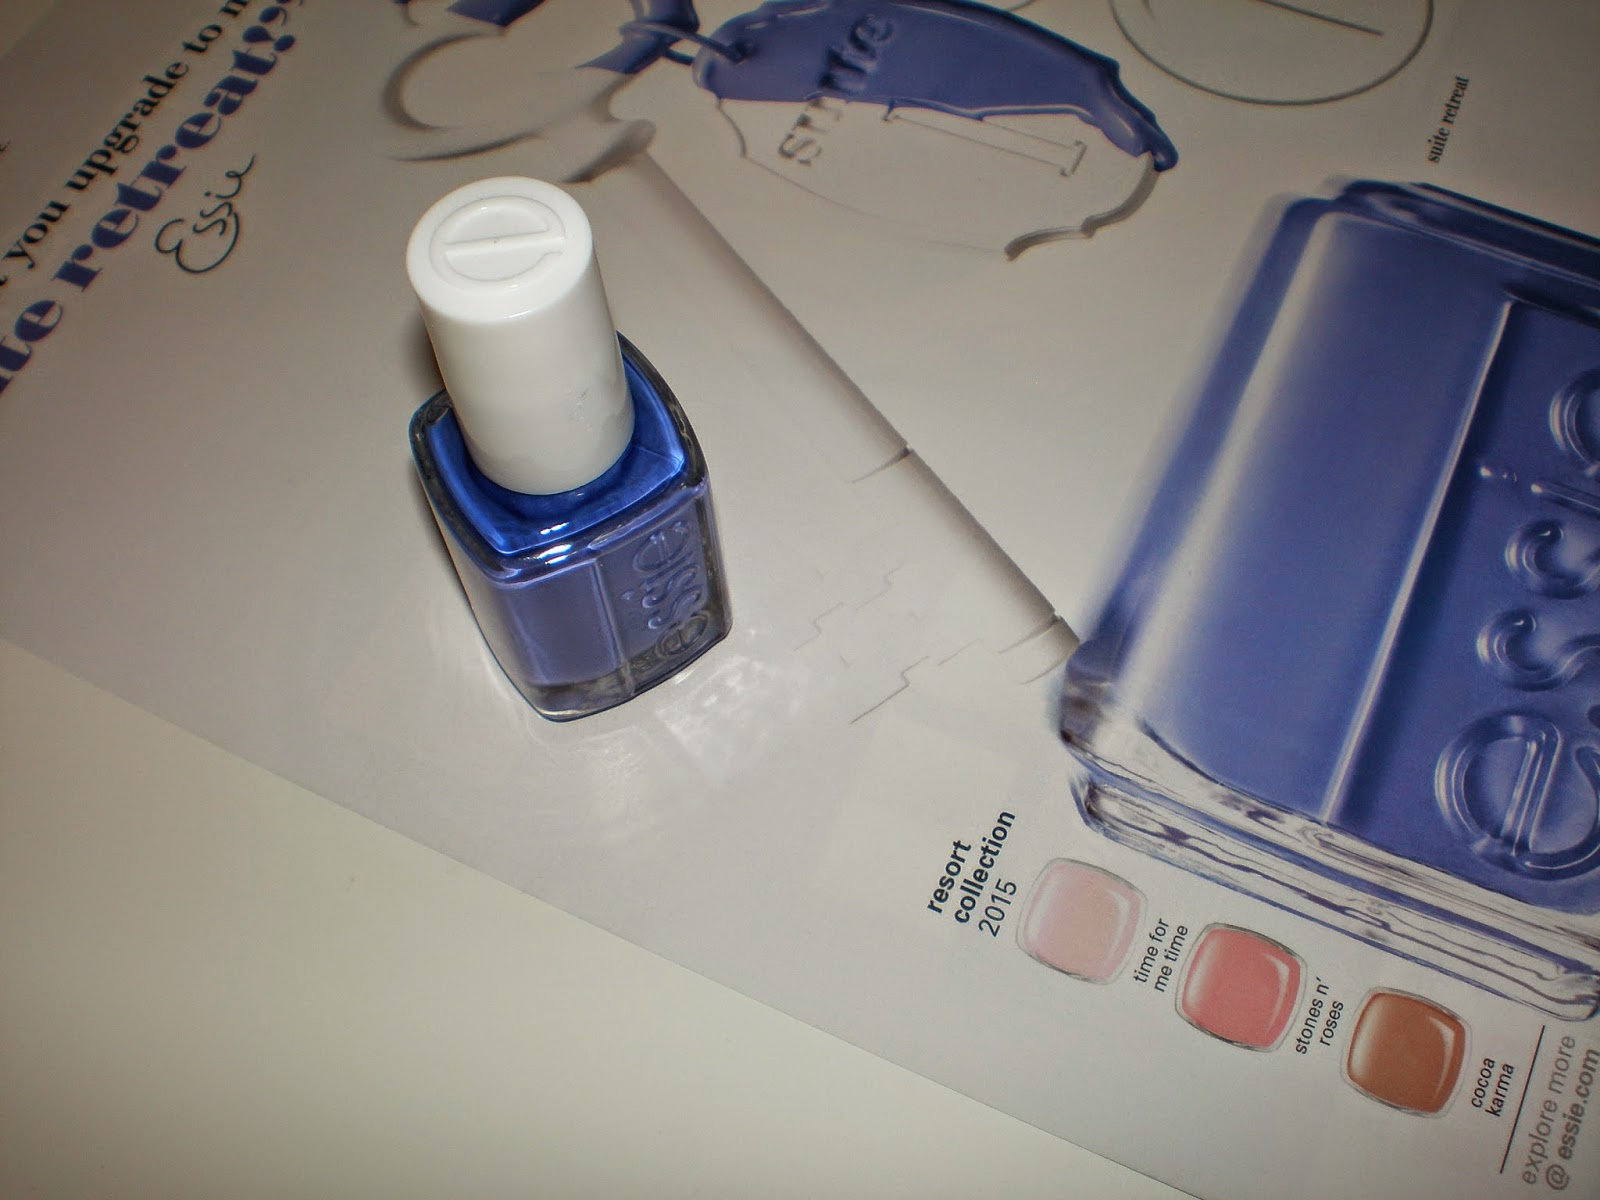 Essie nail polish in Suite Retreat